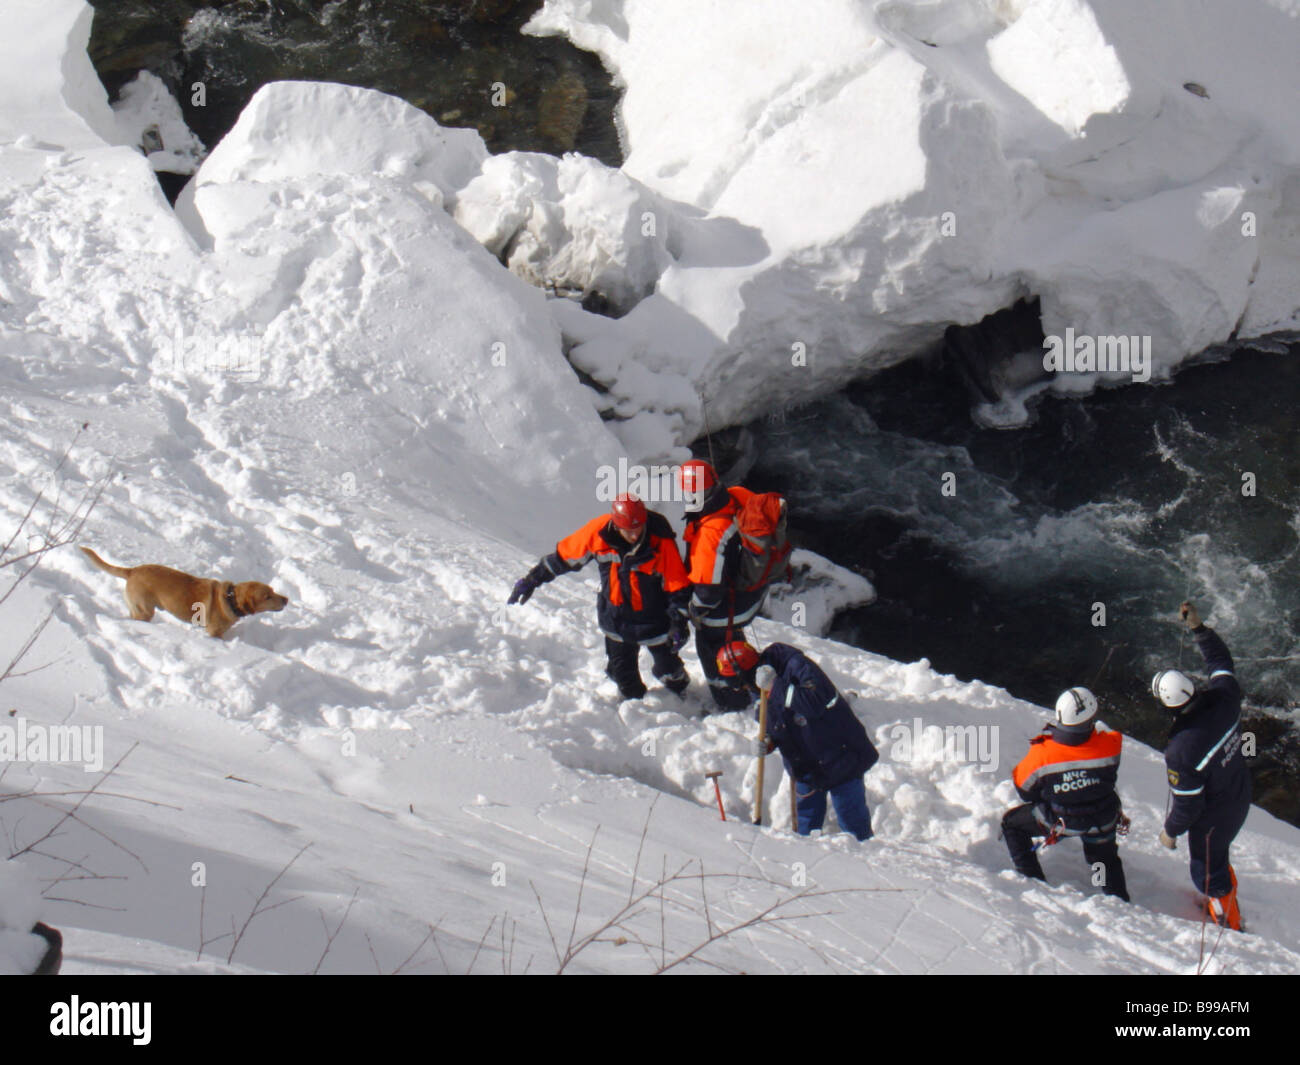 Rescuers of the North Ossetian Emergencies Ministry busy with post avalanching clean up - Stock Image